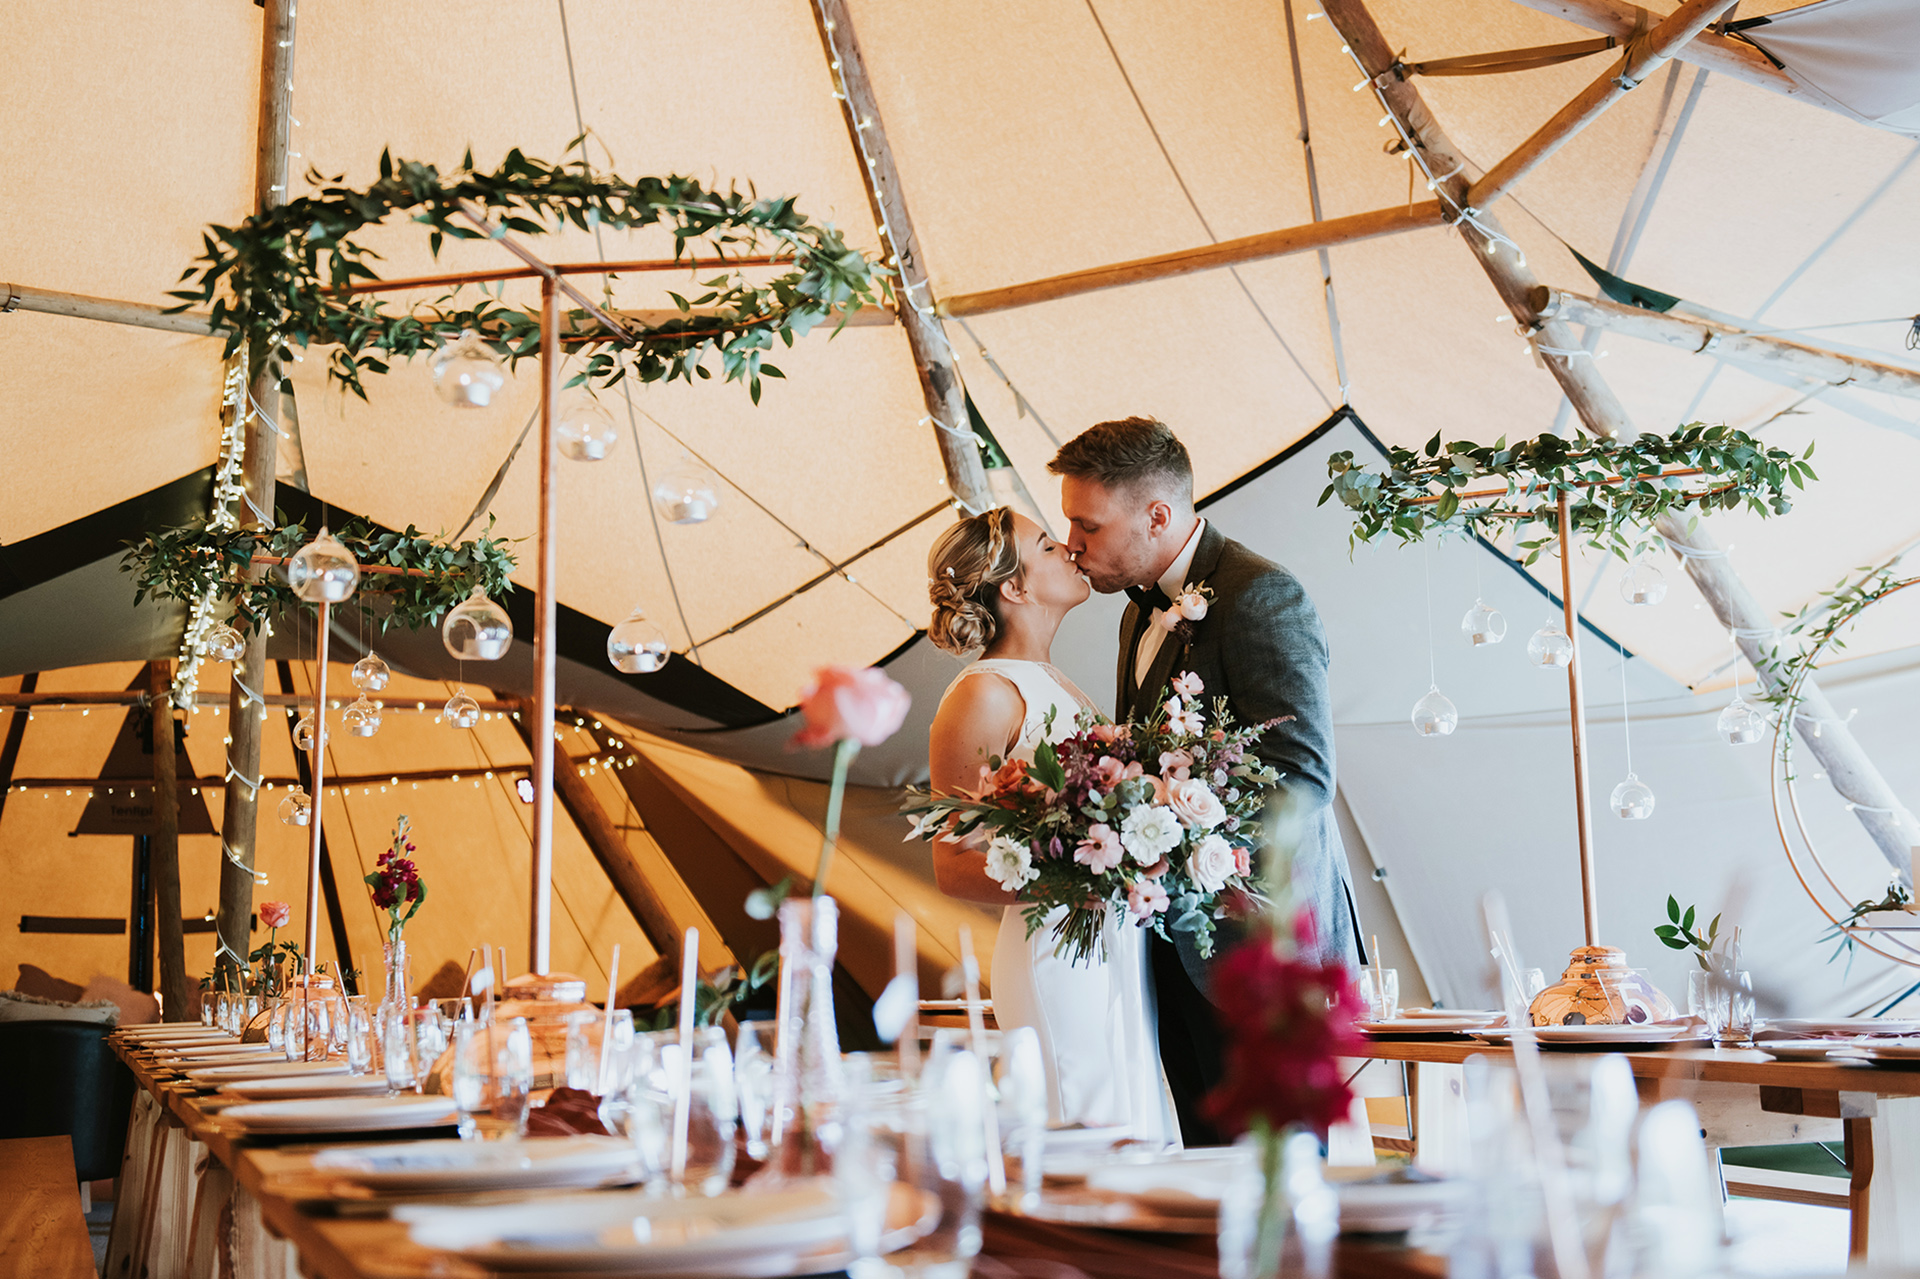 All That Glimmers - Alternative tipi styling with all the sparkle at The Hidden Hive